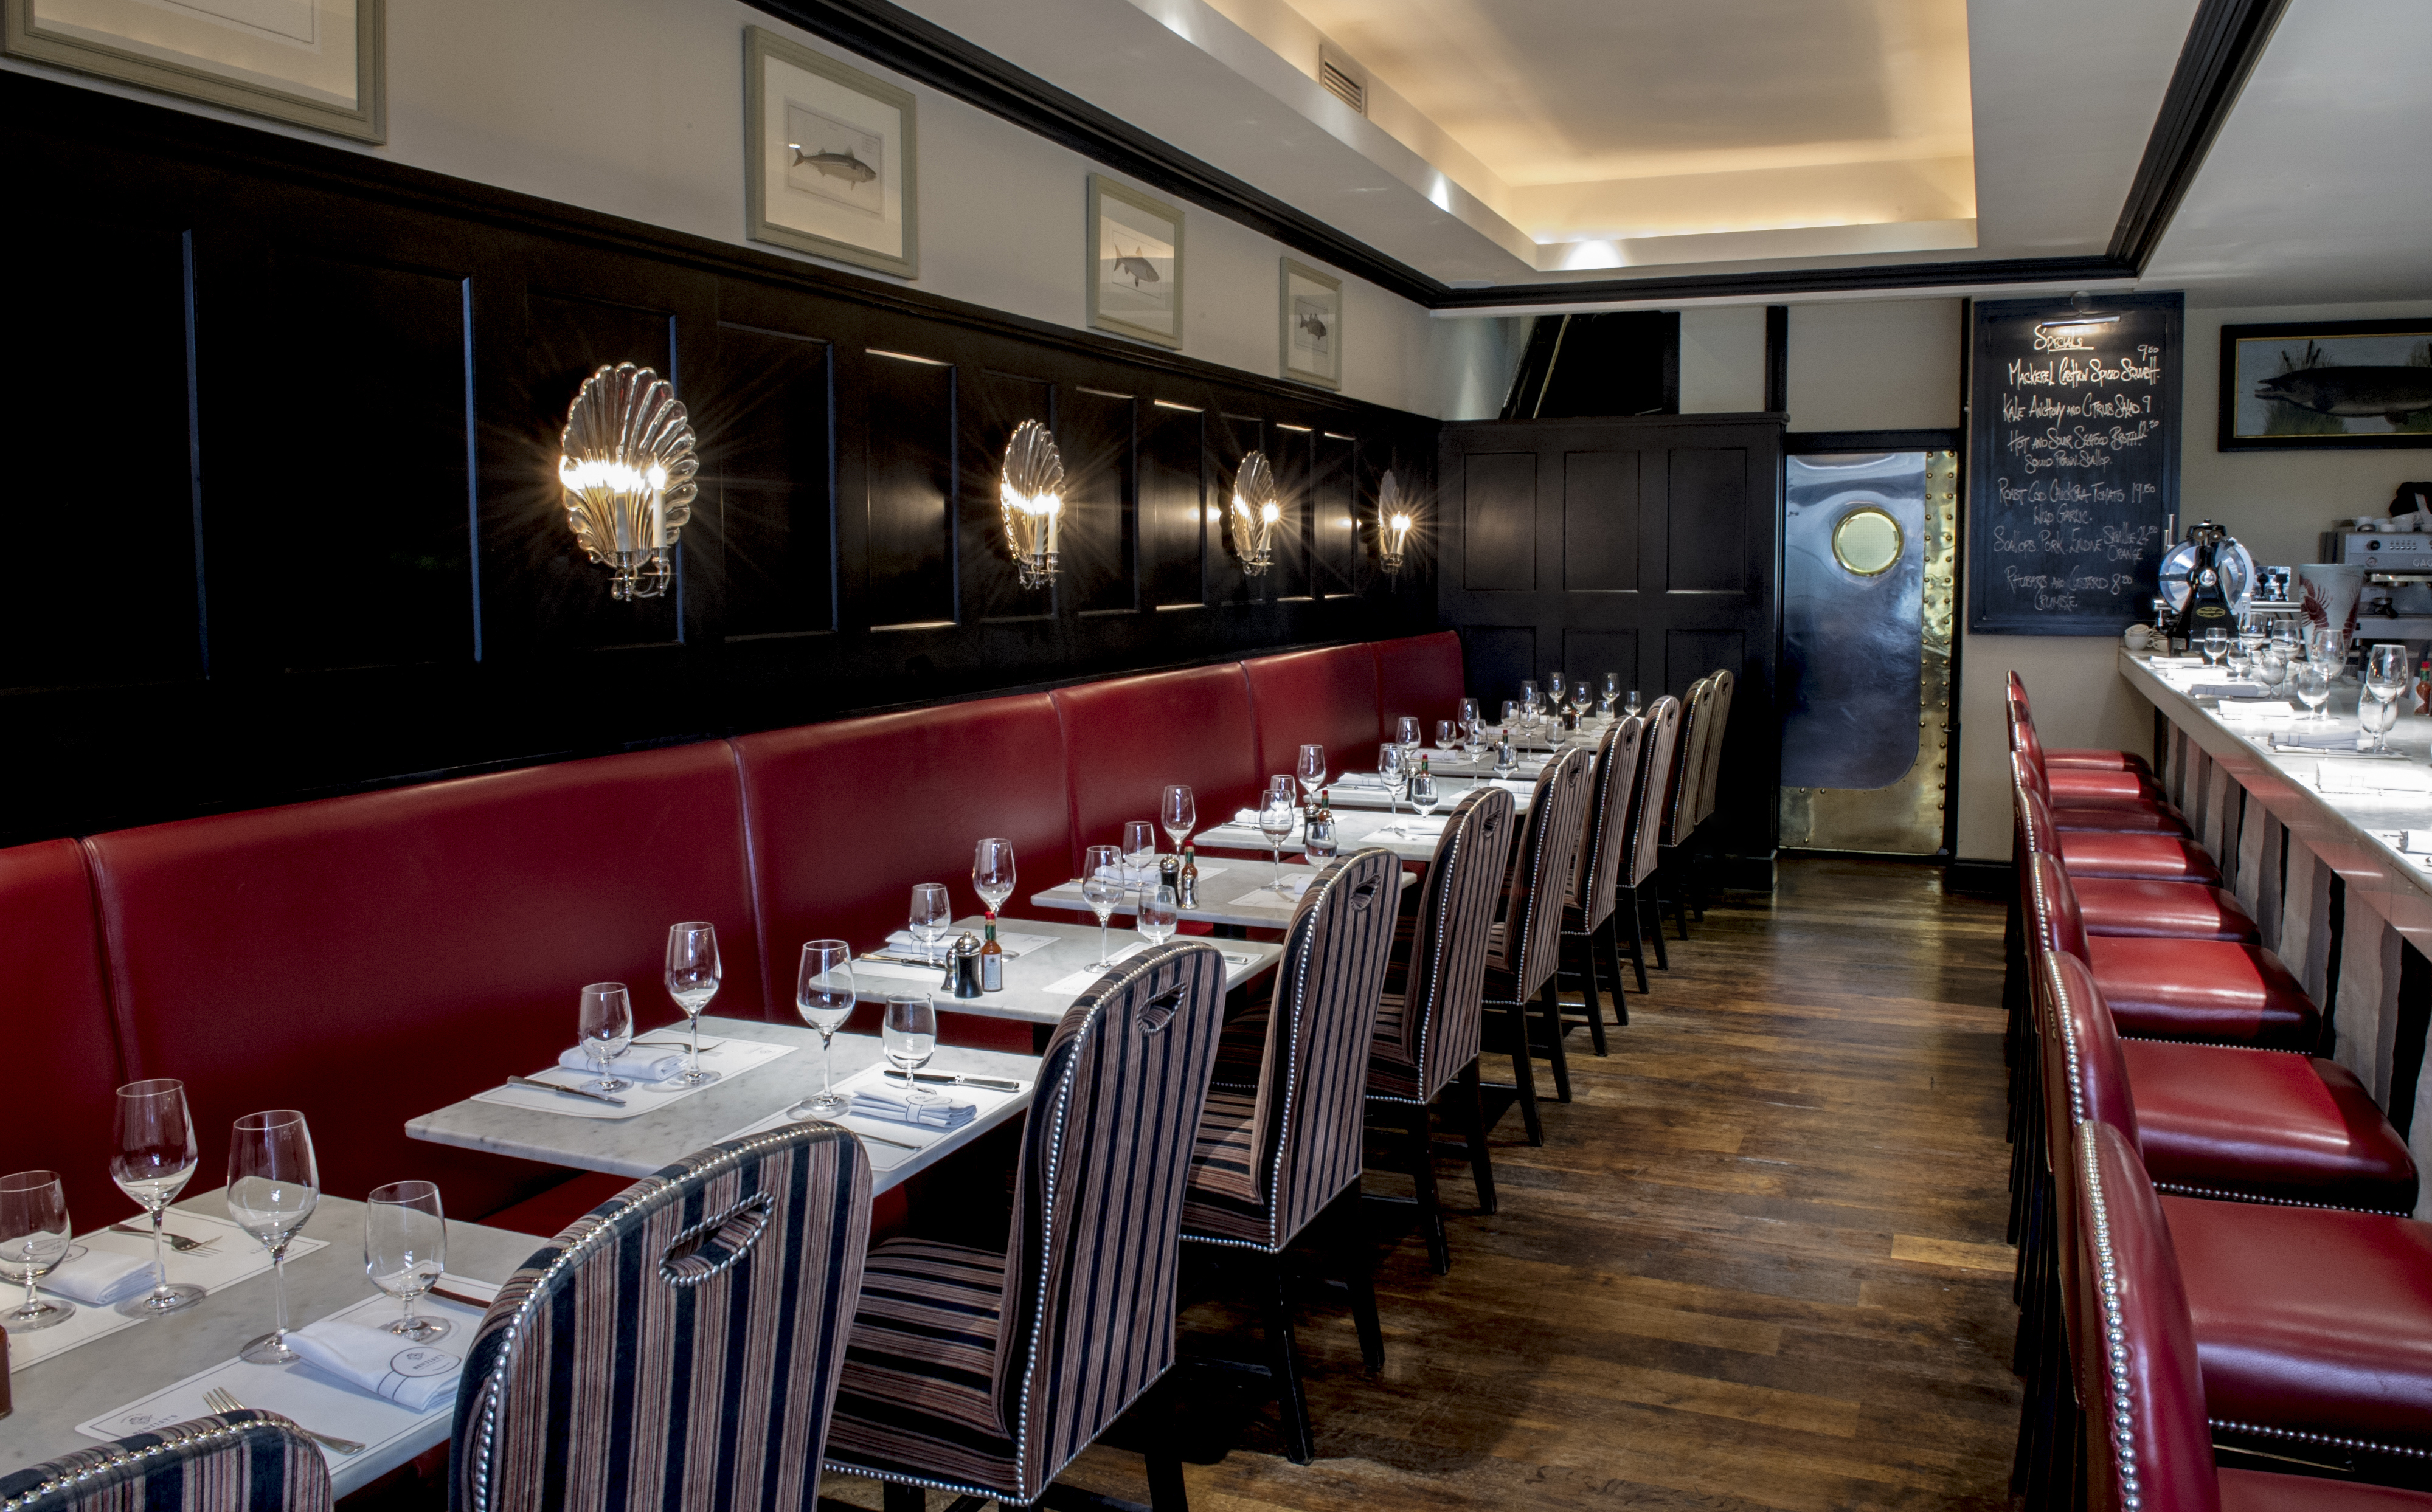 Bentleys Oyster Bar and Grill Image gallery and photos - W1B 4DG - London | View